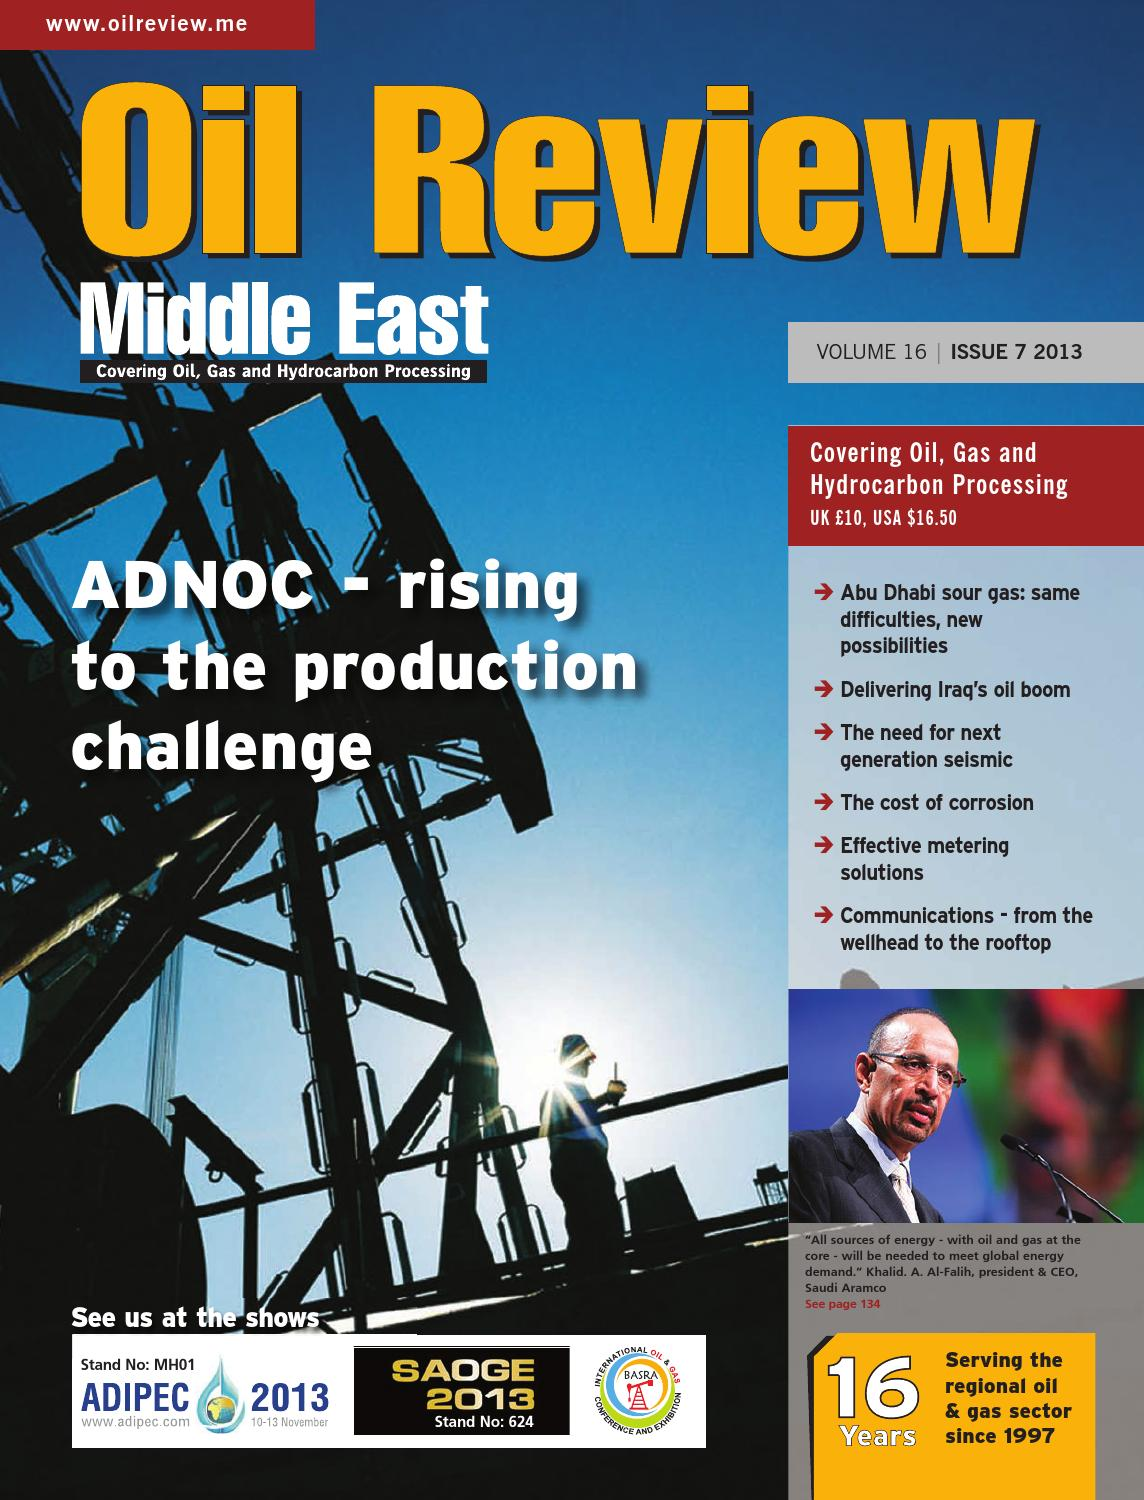 Oil Review Middle East 7 2013 By Alain Charles Publishing Issuu Mtdengines Mtd Vertical 1 P 70 Fh 752z1p70fh 2006 Engine Spareparts